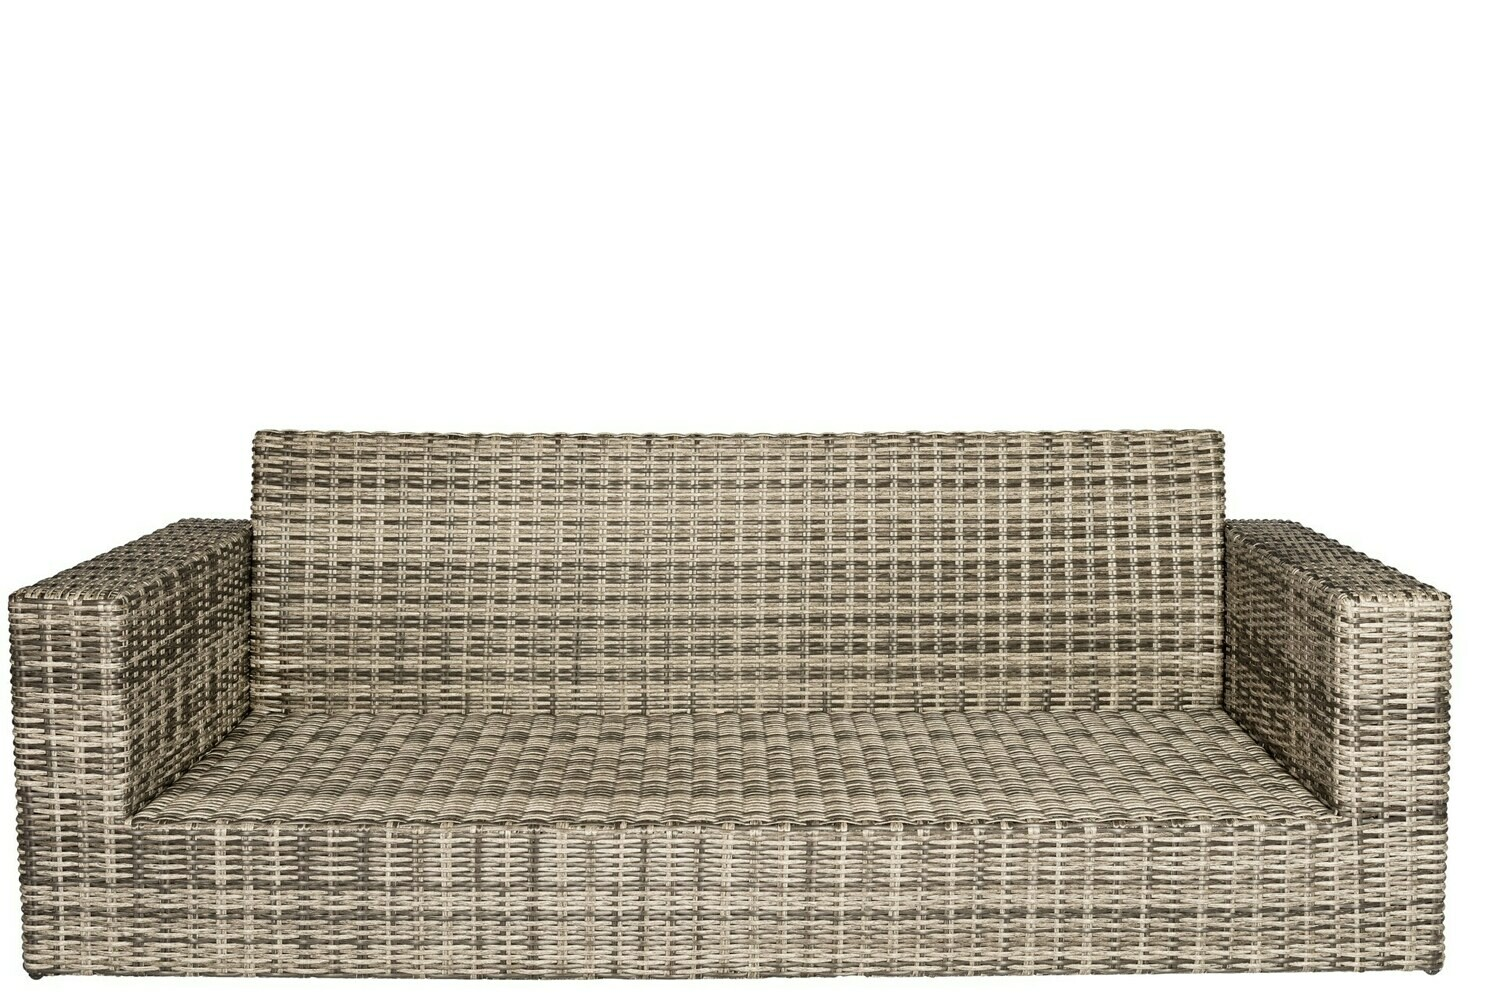 Allegro Wicker Collection Sofa